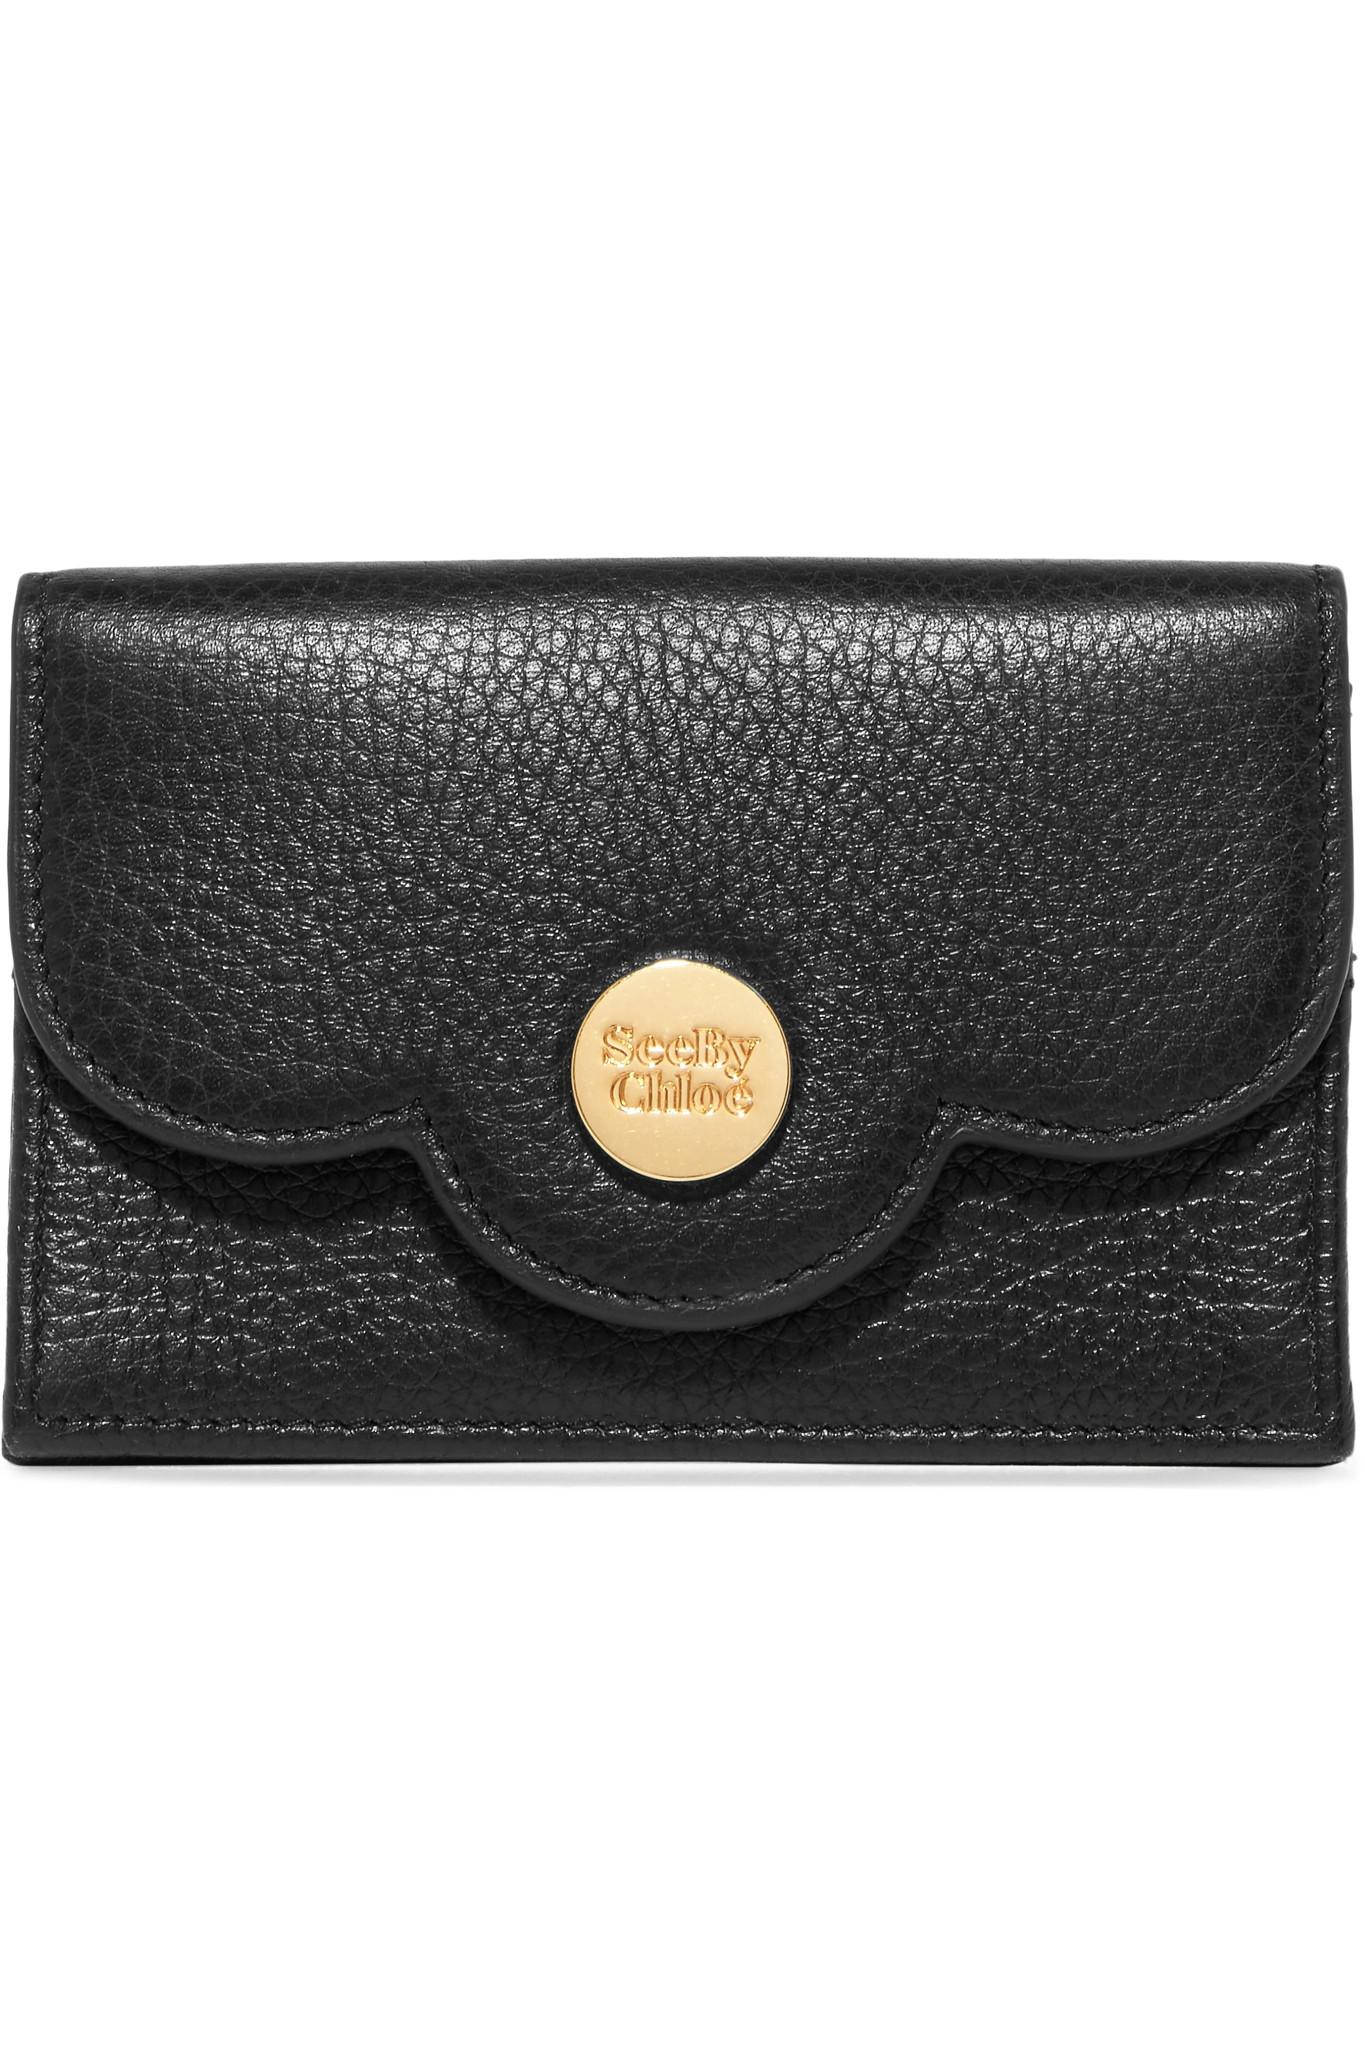 6f28a9f4 See By Chloé Black Polina Scalloped Textured-leather Cardholder